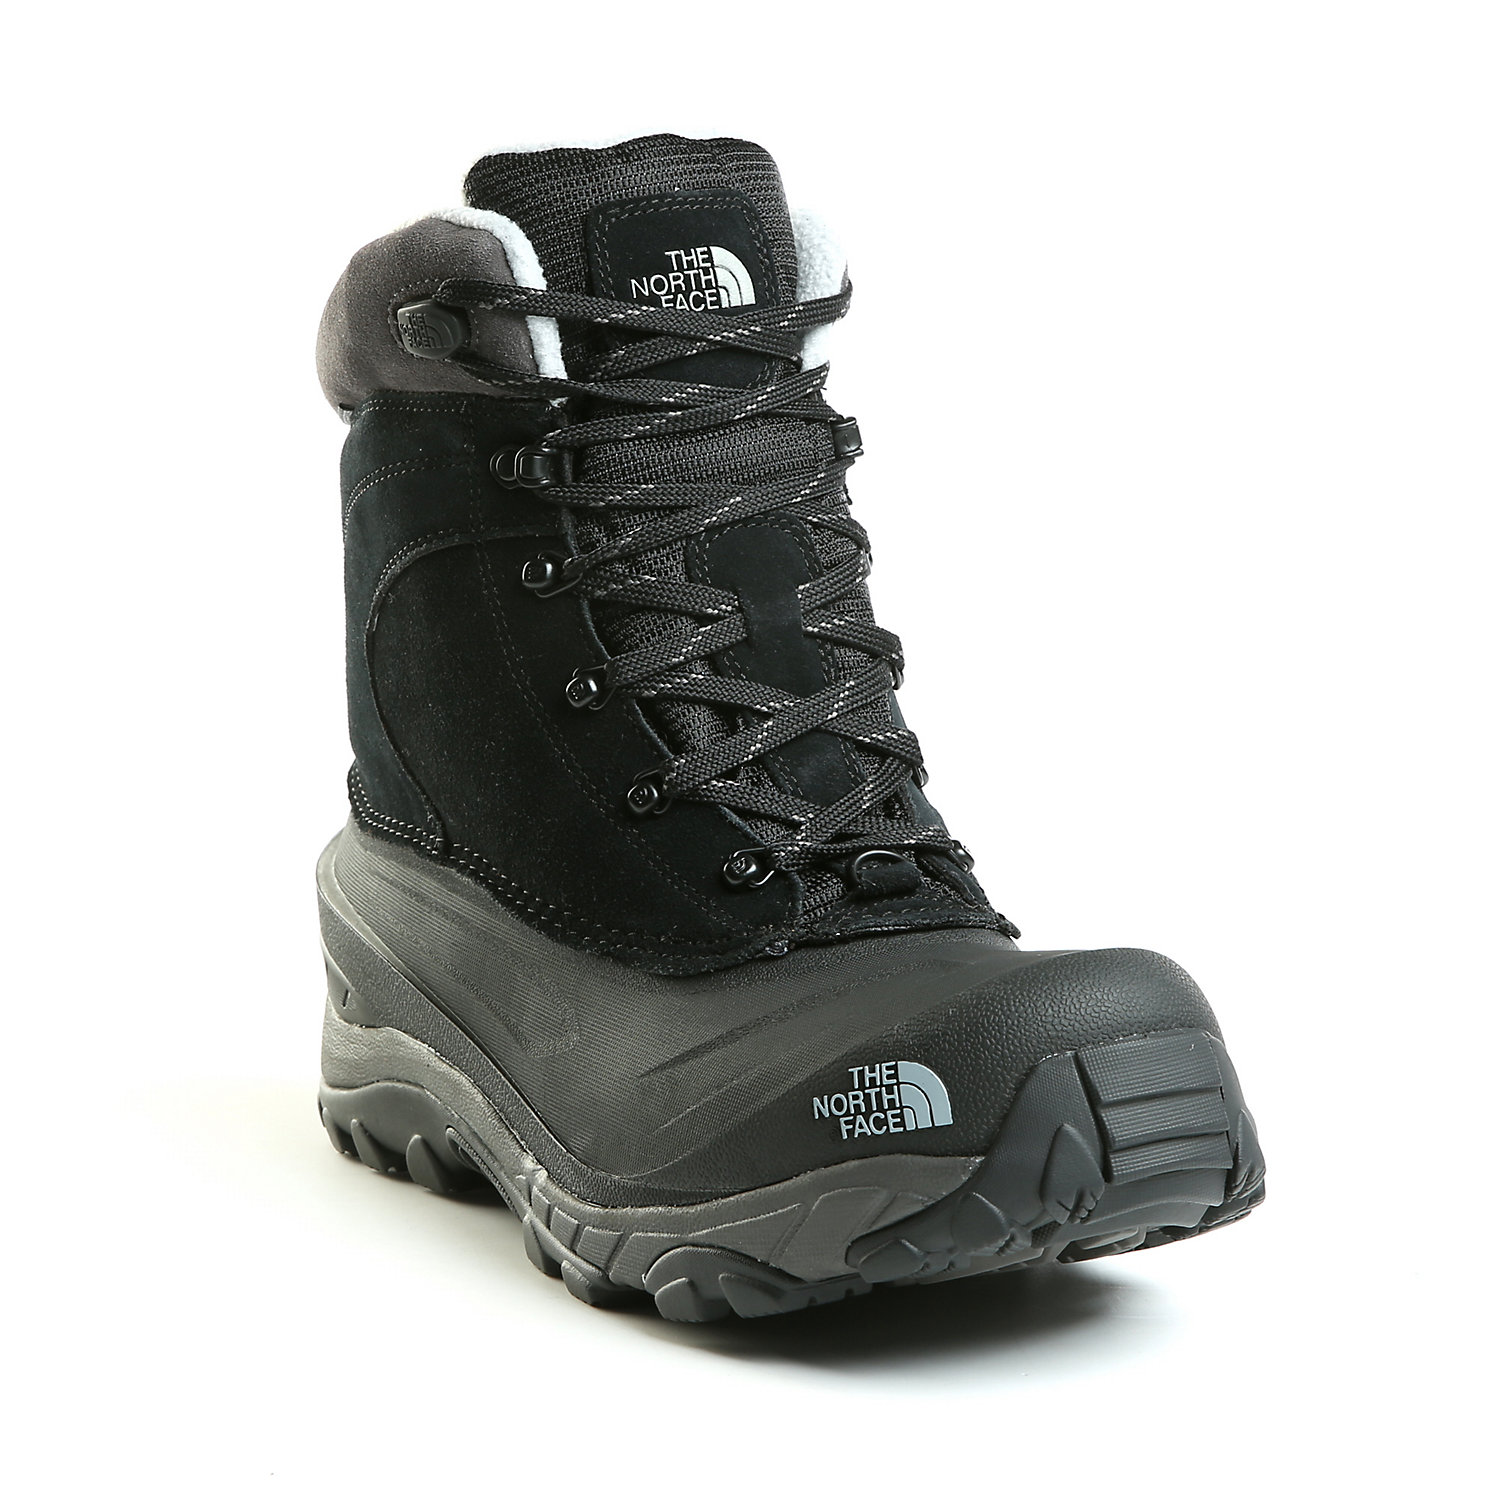 a440ed6dd The North Face Men's Chilkat III Boot